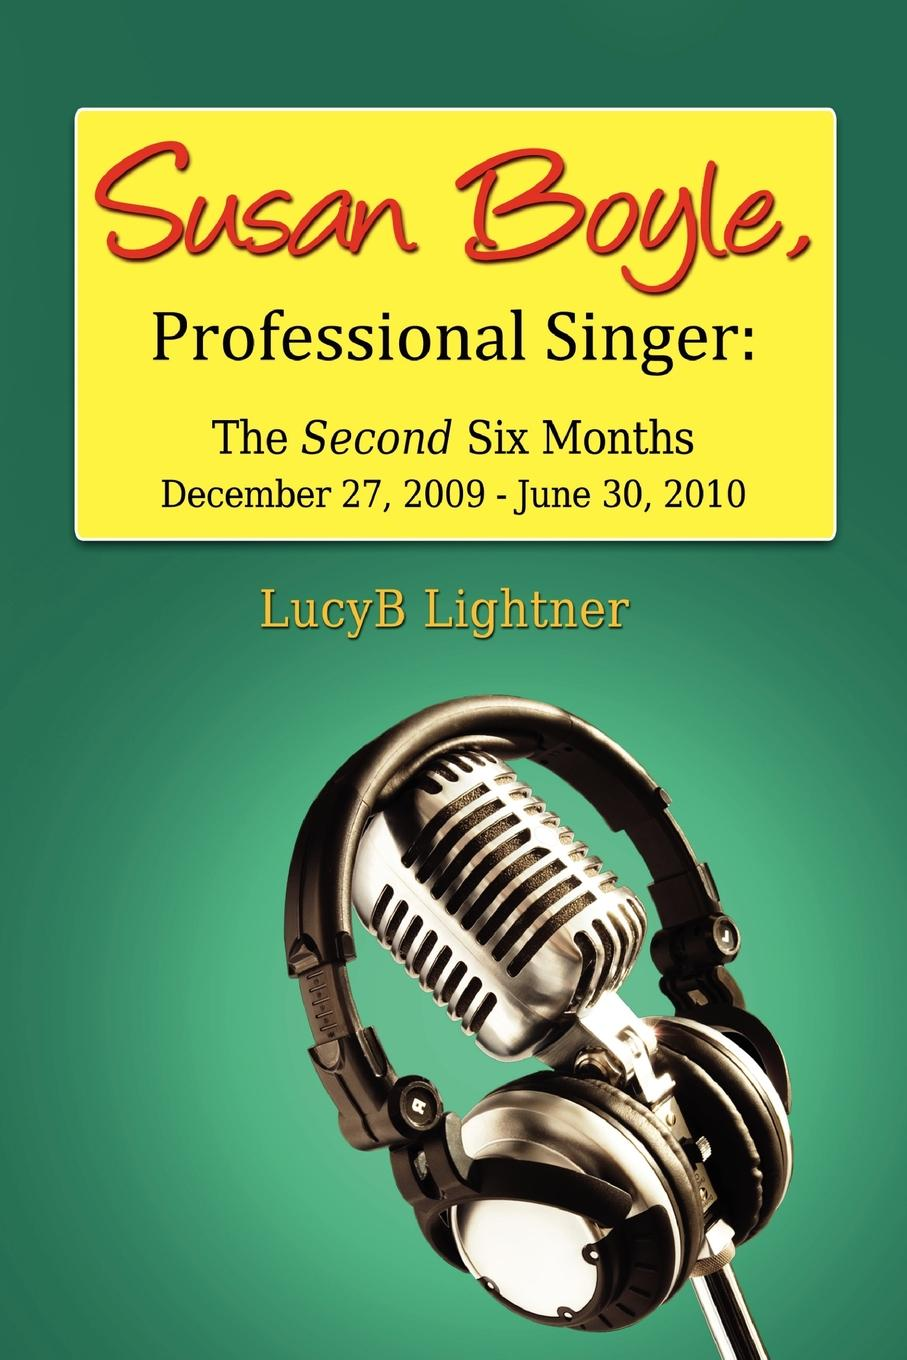 LucyB Lightner Susan Boyle, Professional Singer. The Second Six Months coolidge susan a round dozen